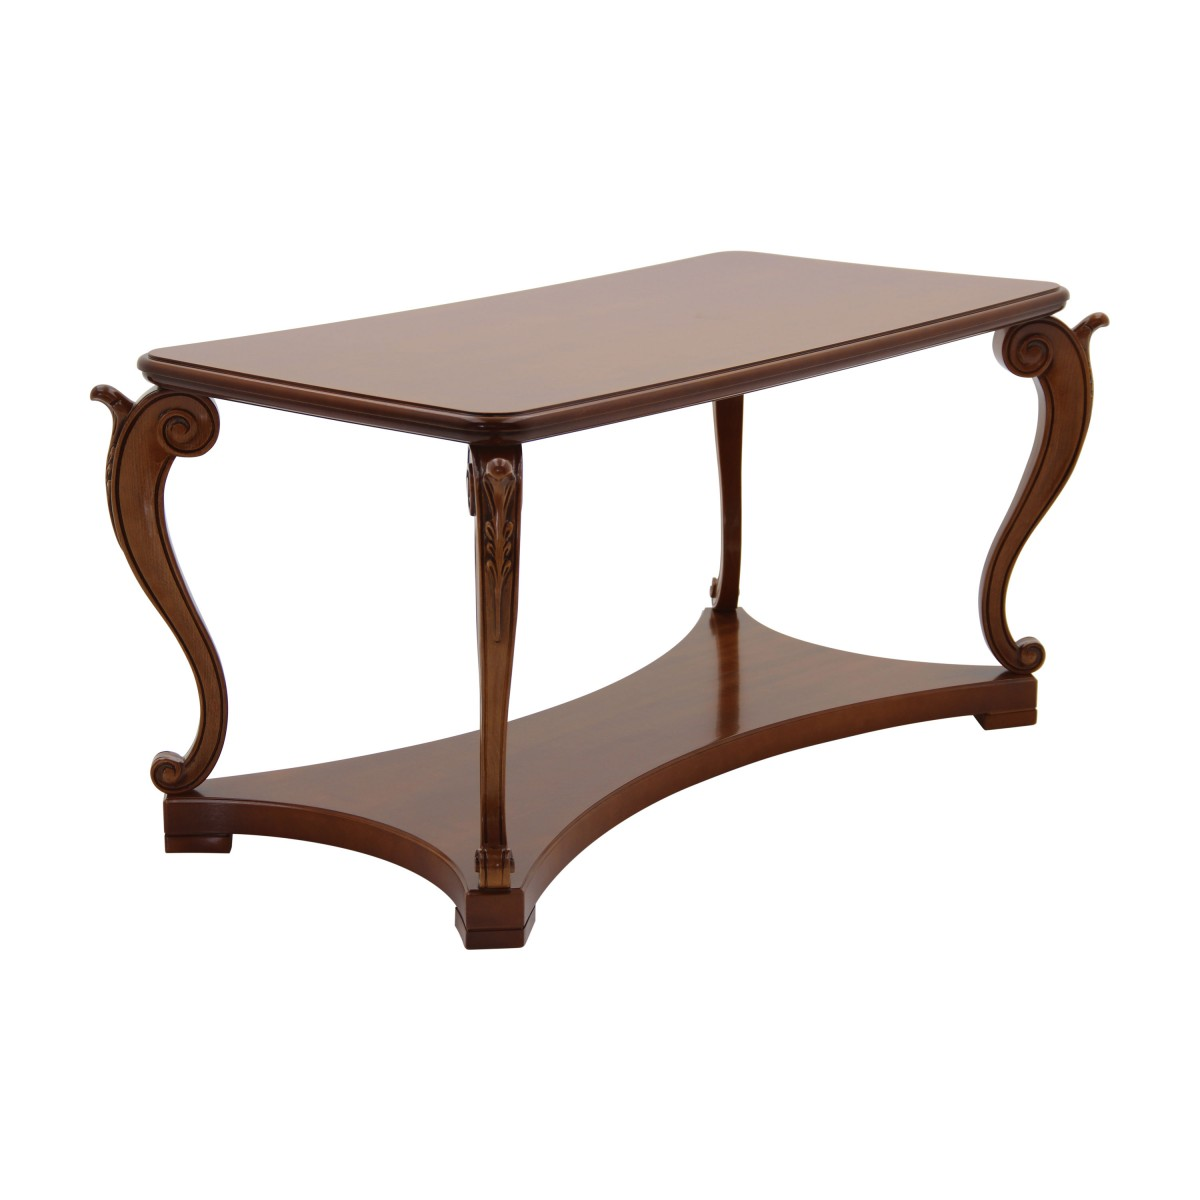 Small table Pilade - Sevensedie